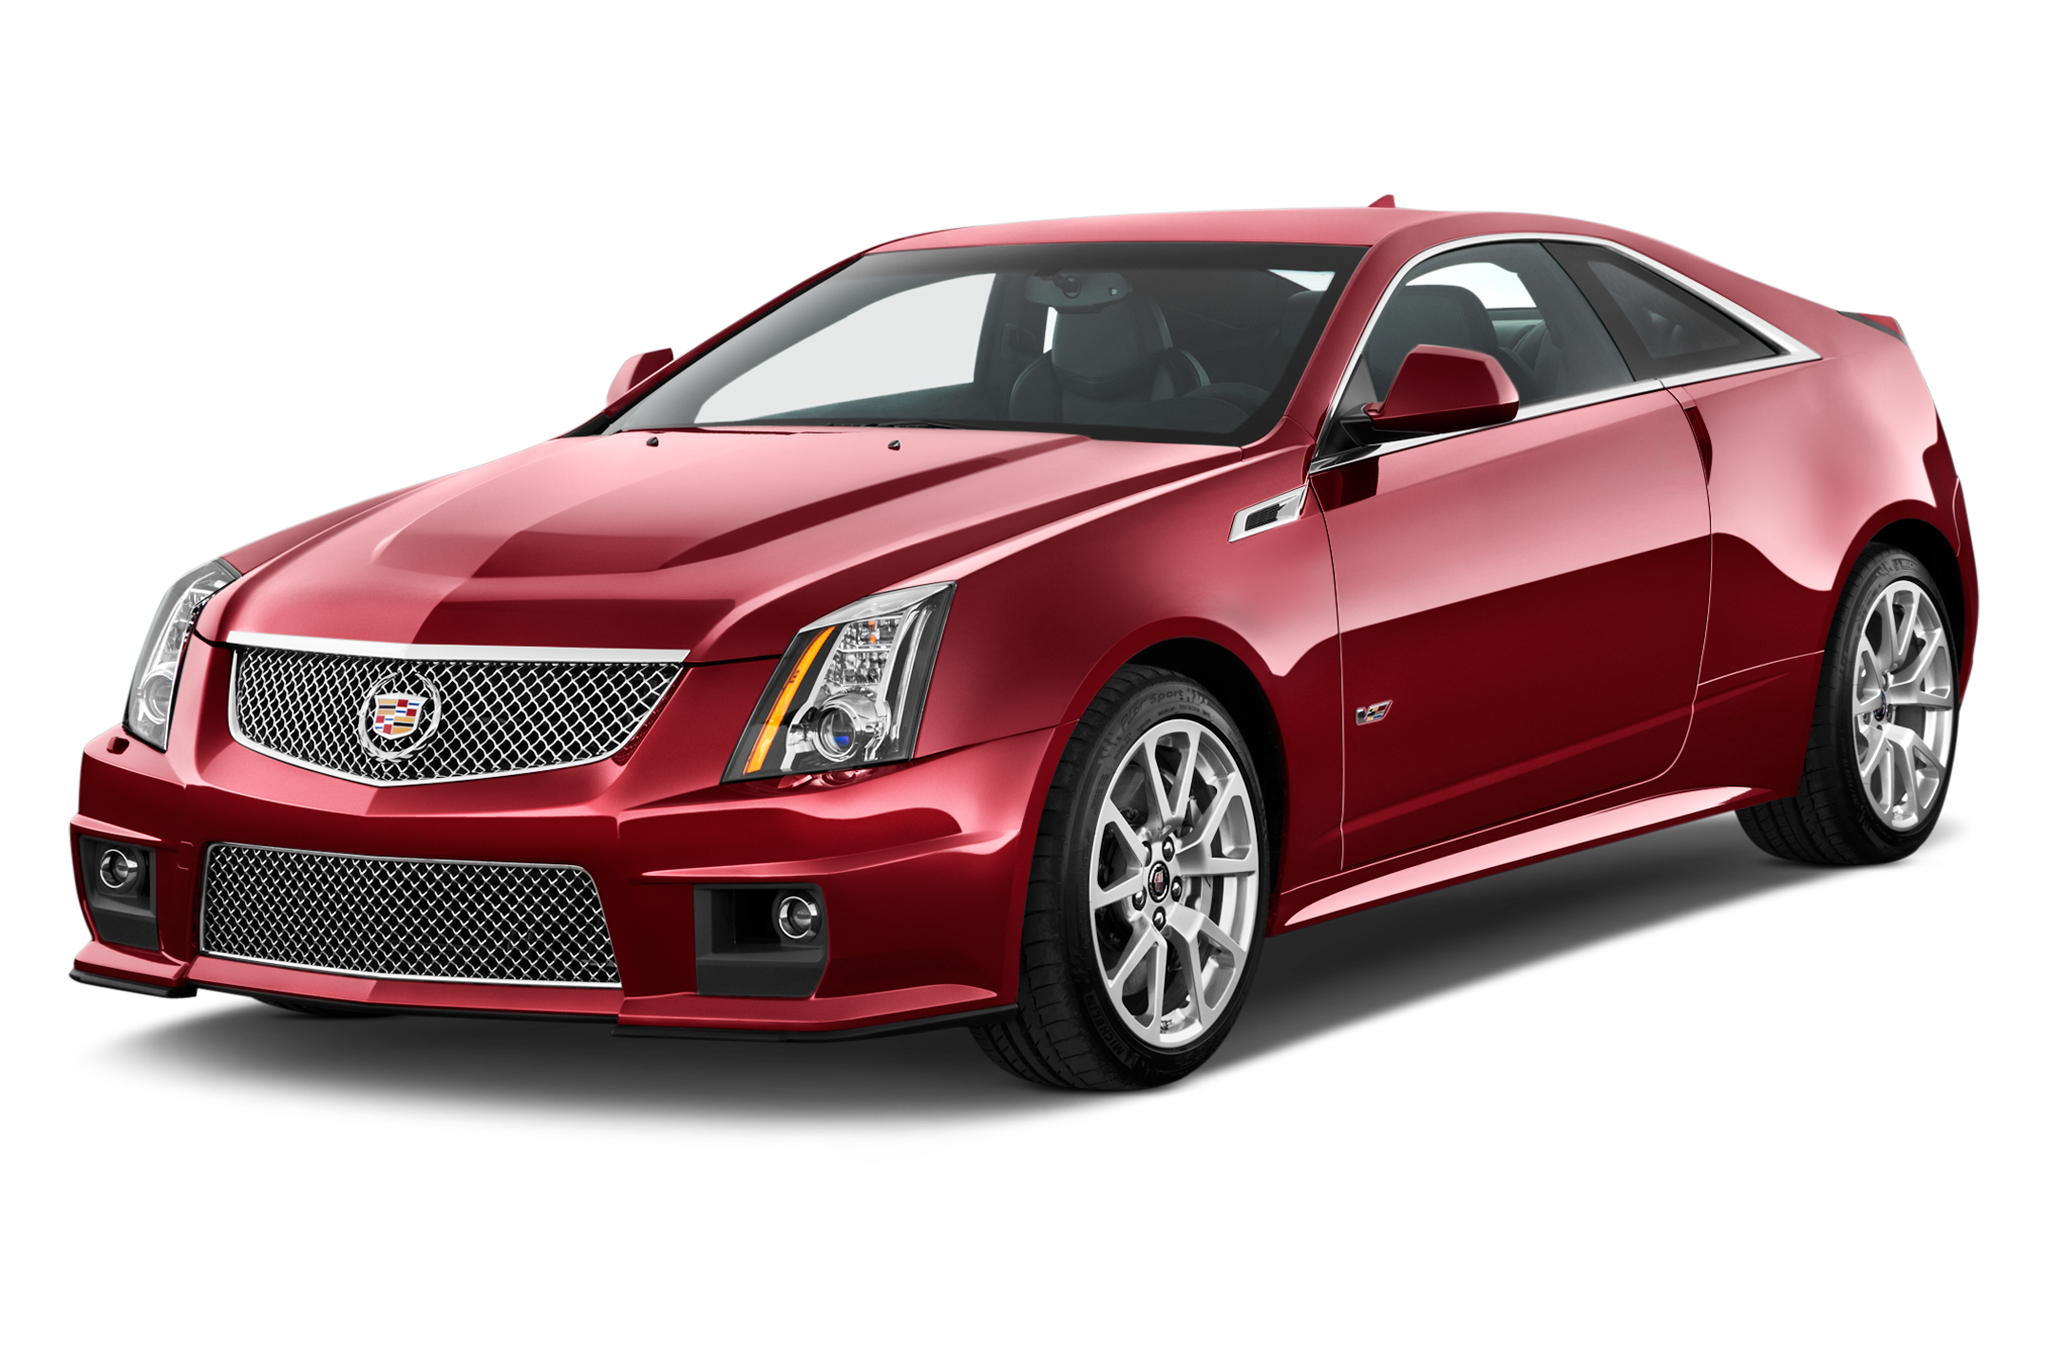 cadillac a ctsv atsv drive local best dealers on network get of v from the now review test cts price